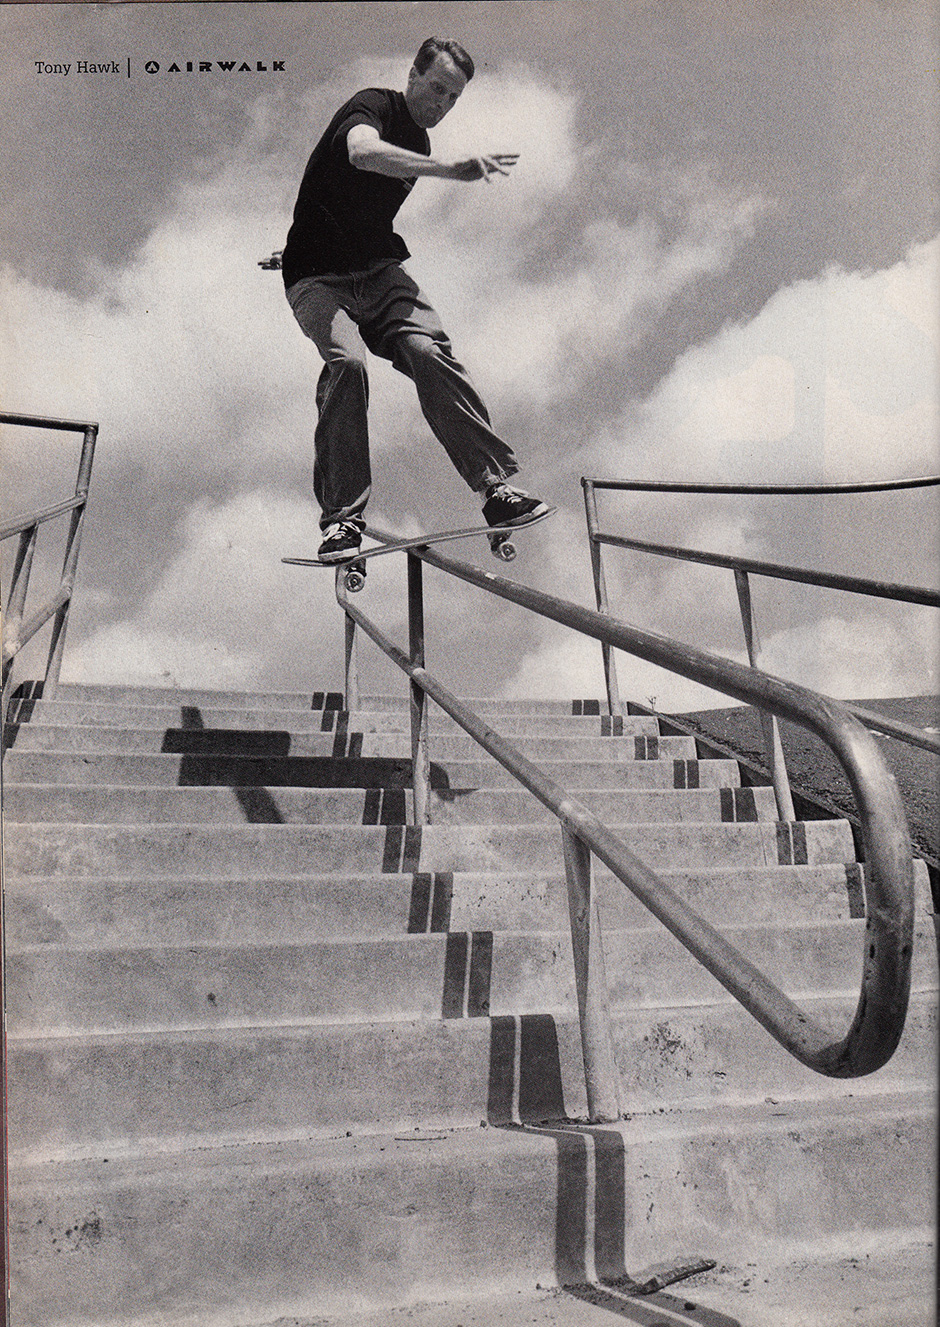 Doubling the stair count 7 years later in this Airwalk ad with classical form on a lipslide